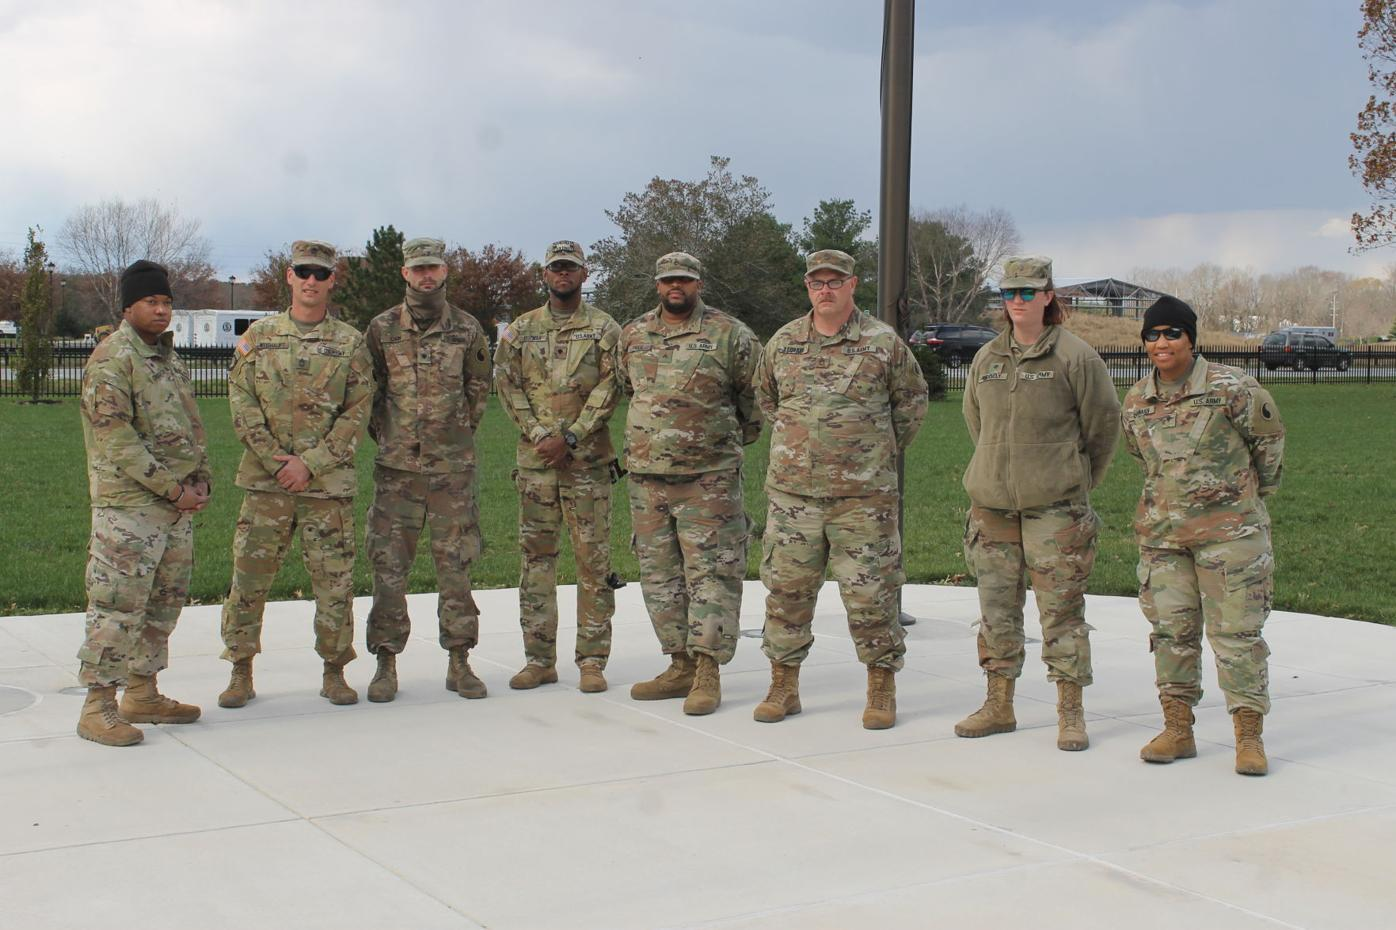 Eastern Shore soldiers return home from overseas